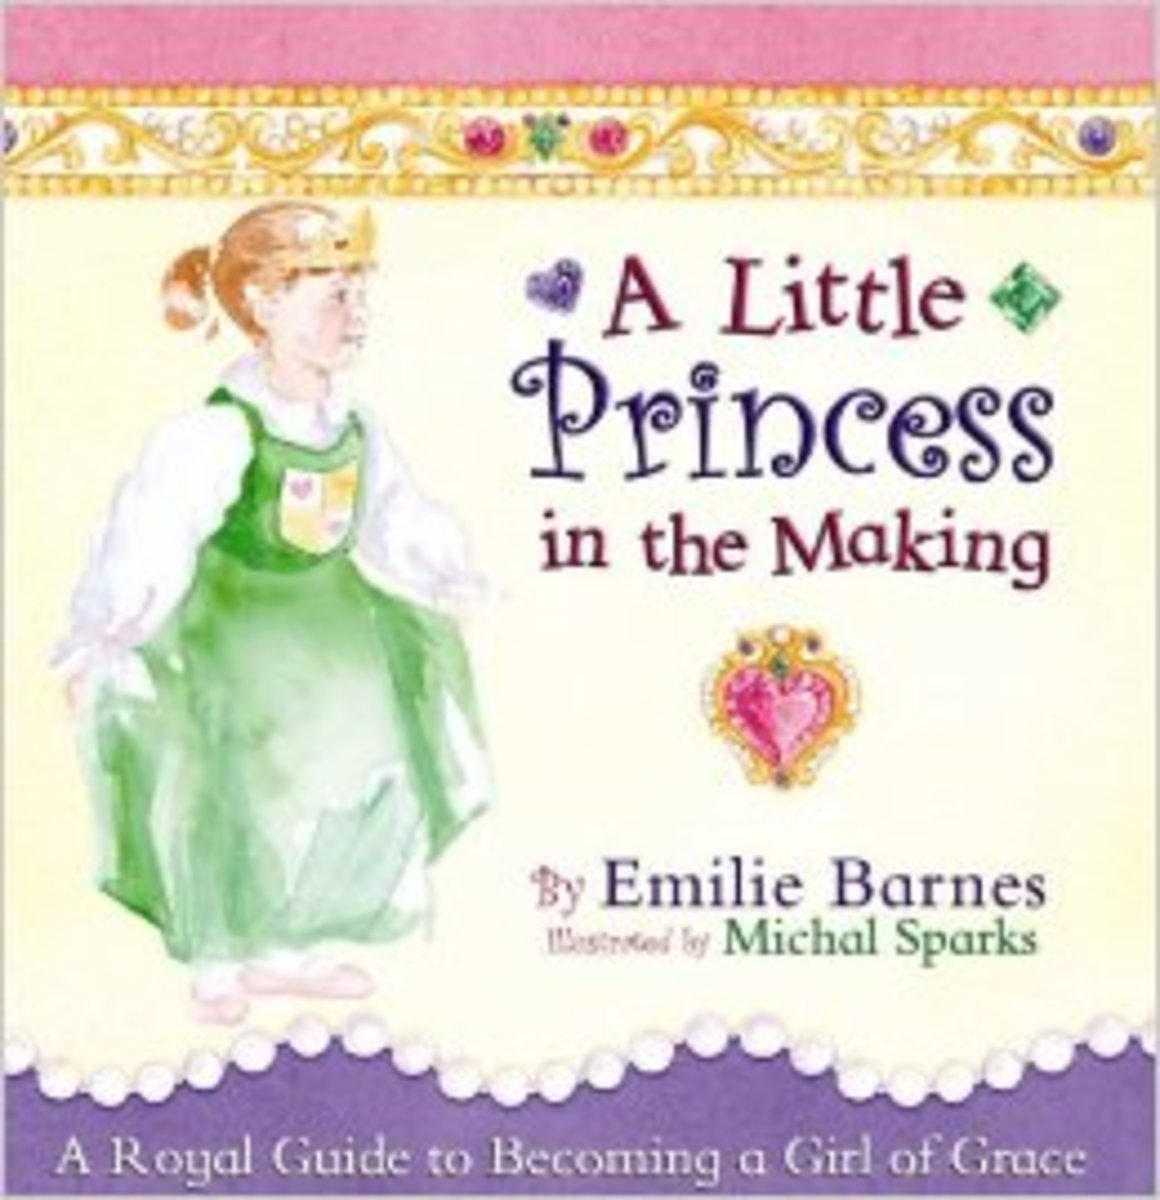 A Little Princess in the Making: A Royal Guide to Becoming a Girl of Grace by Emilie Barnes - All images are from amazon.com.